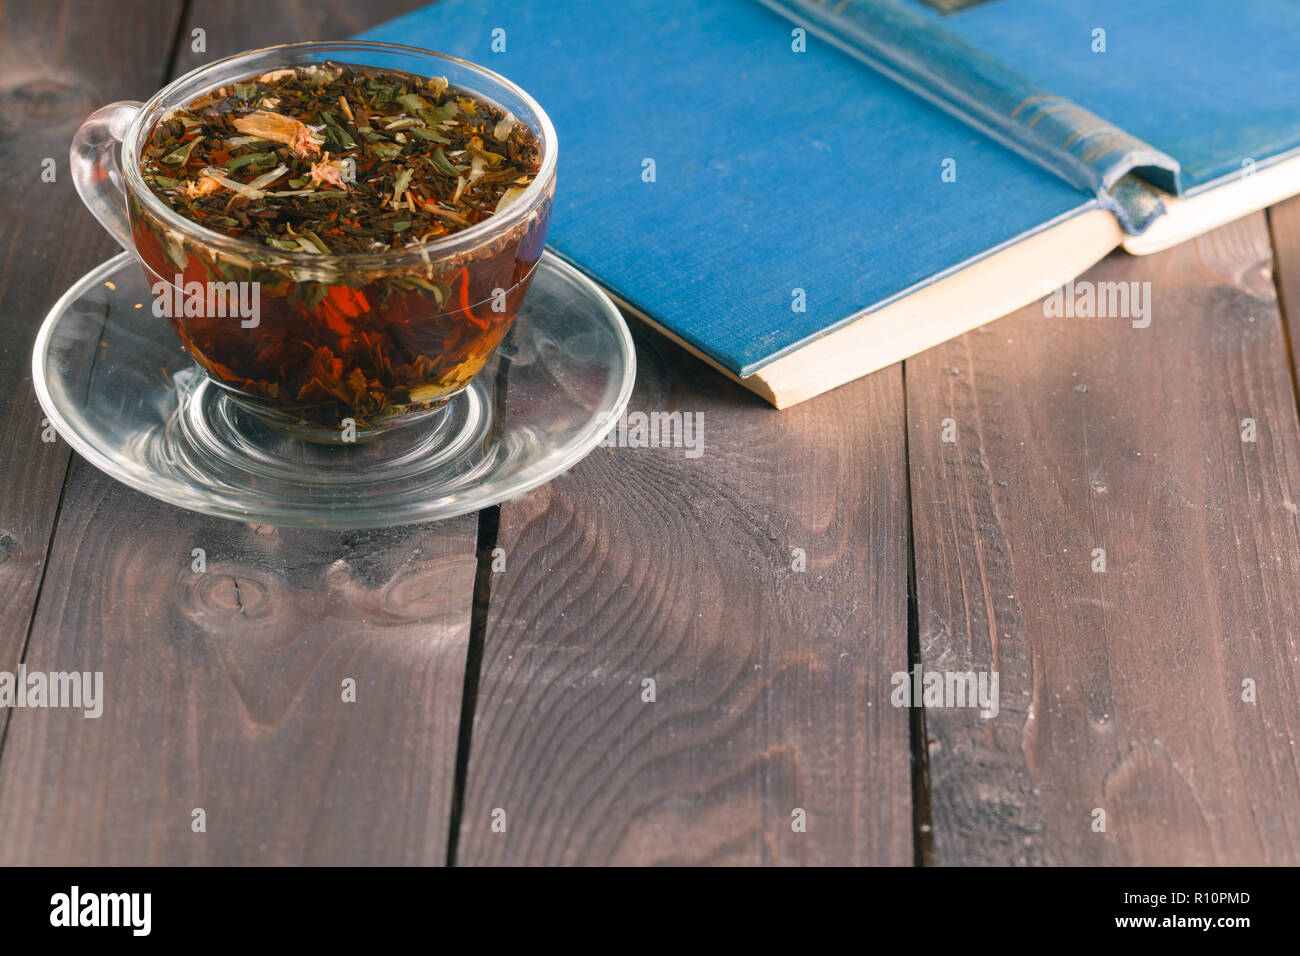 Cup of hot tea with book on table on dark background - Stock Image